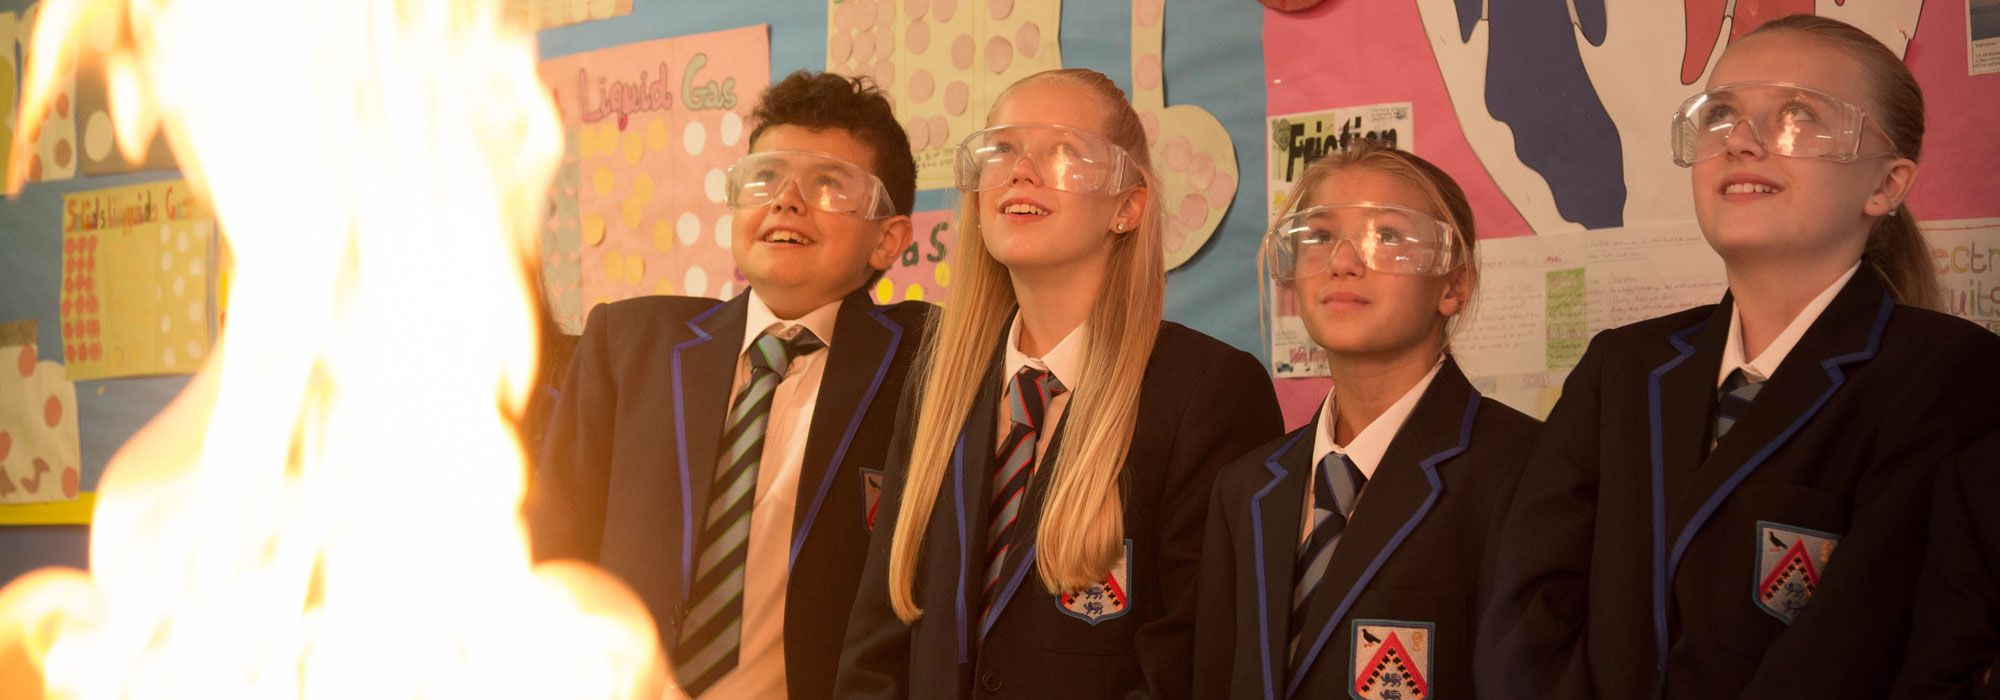 Science class with pupils watching flammable chemicals